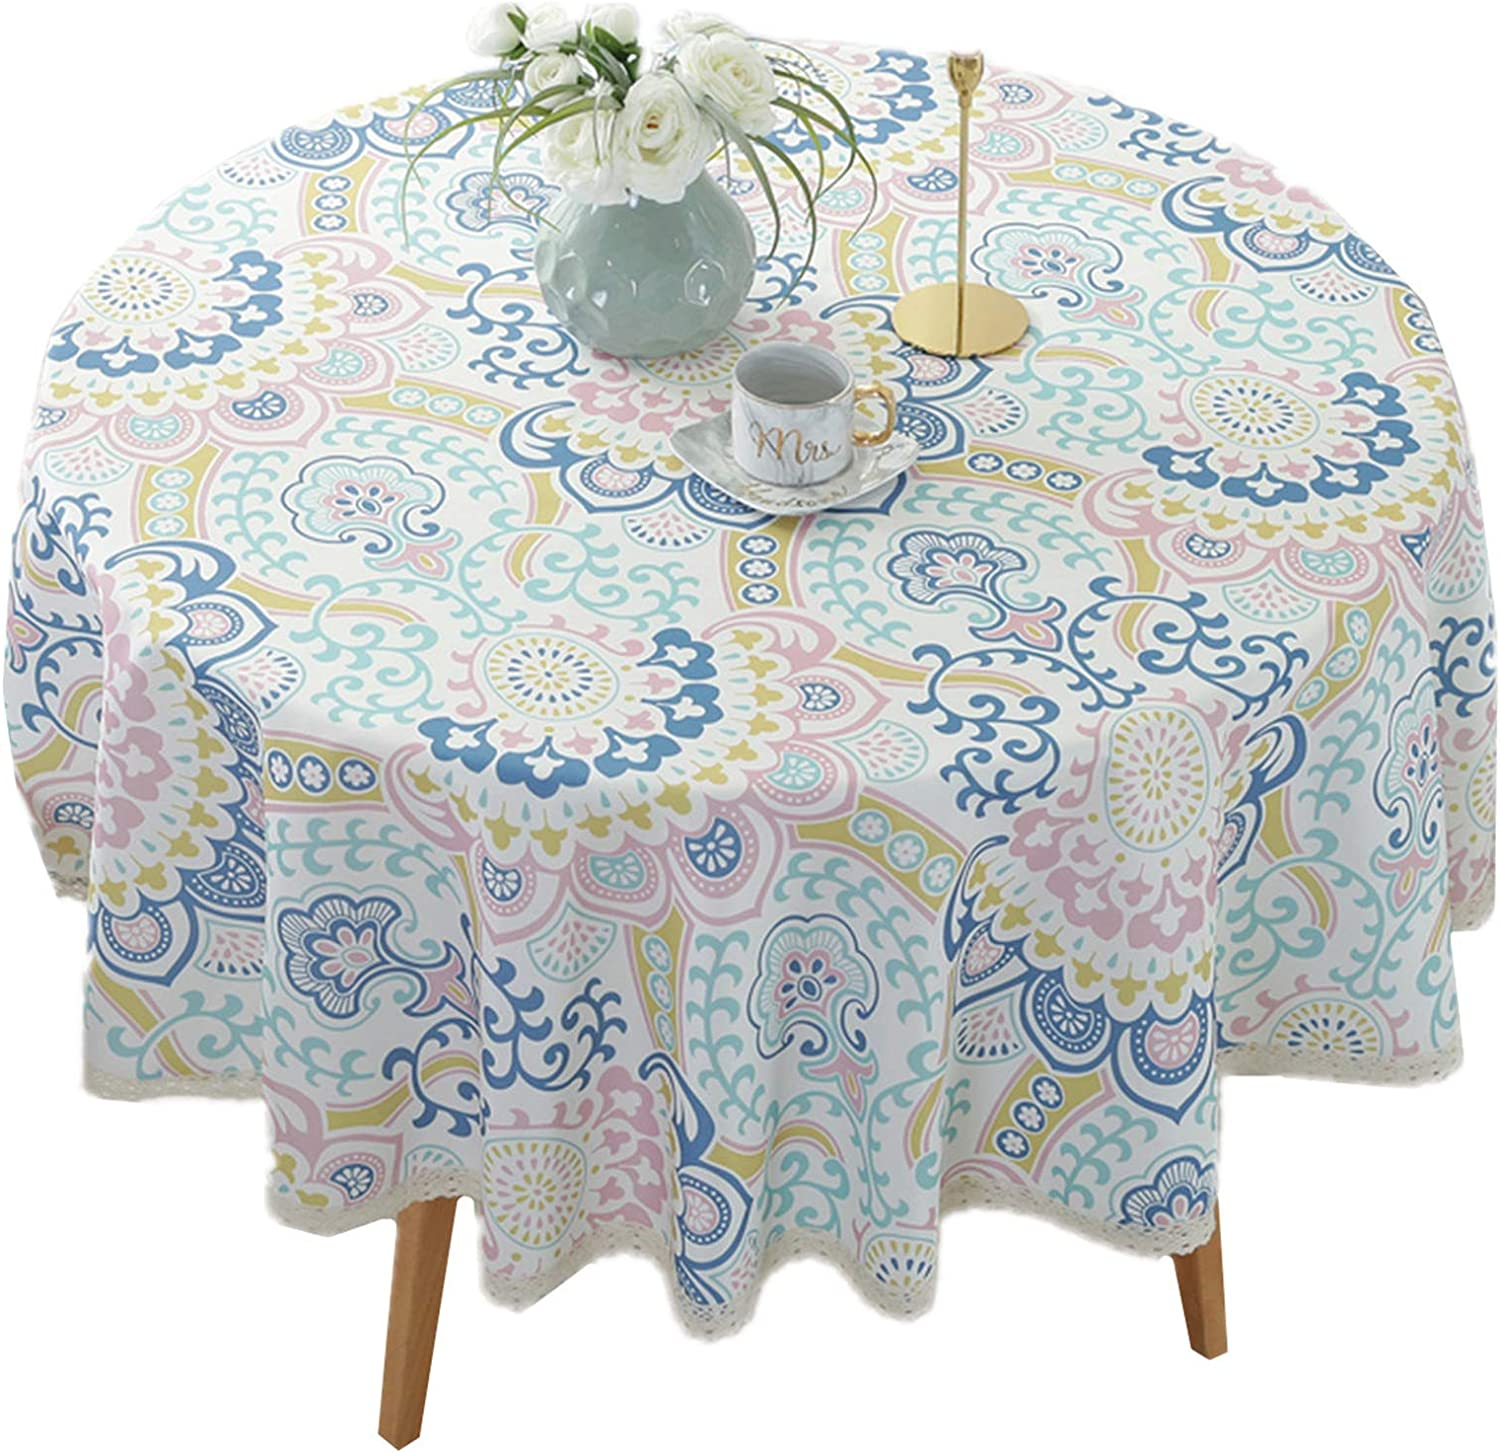 "Heavy Duty Elegant Printed Tablecloth - Spillproof Fabric Lace Table Cloth - Round Table Cover for Dining Room Kitchen Home Decor (55"" Round, Blue Cirrus)"